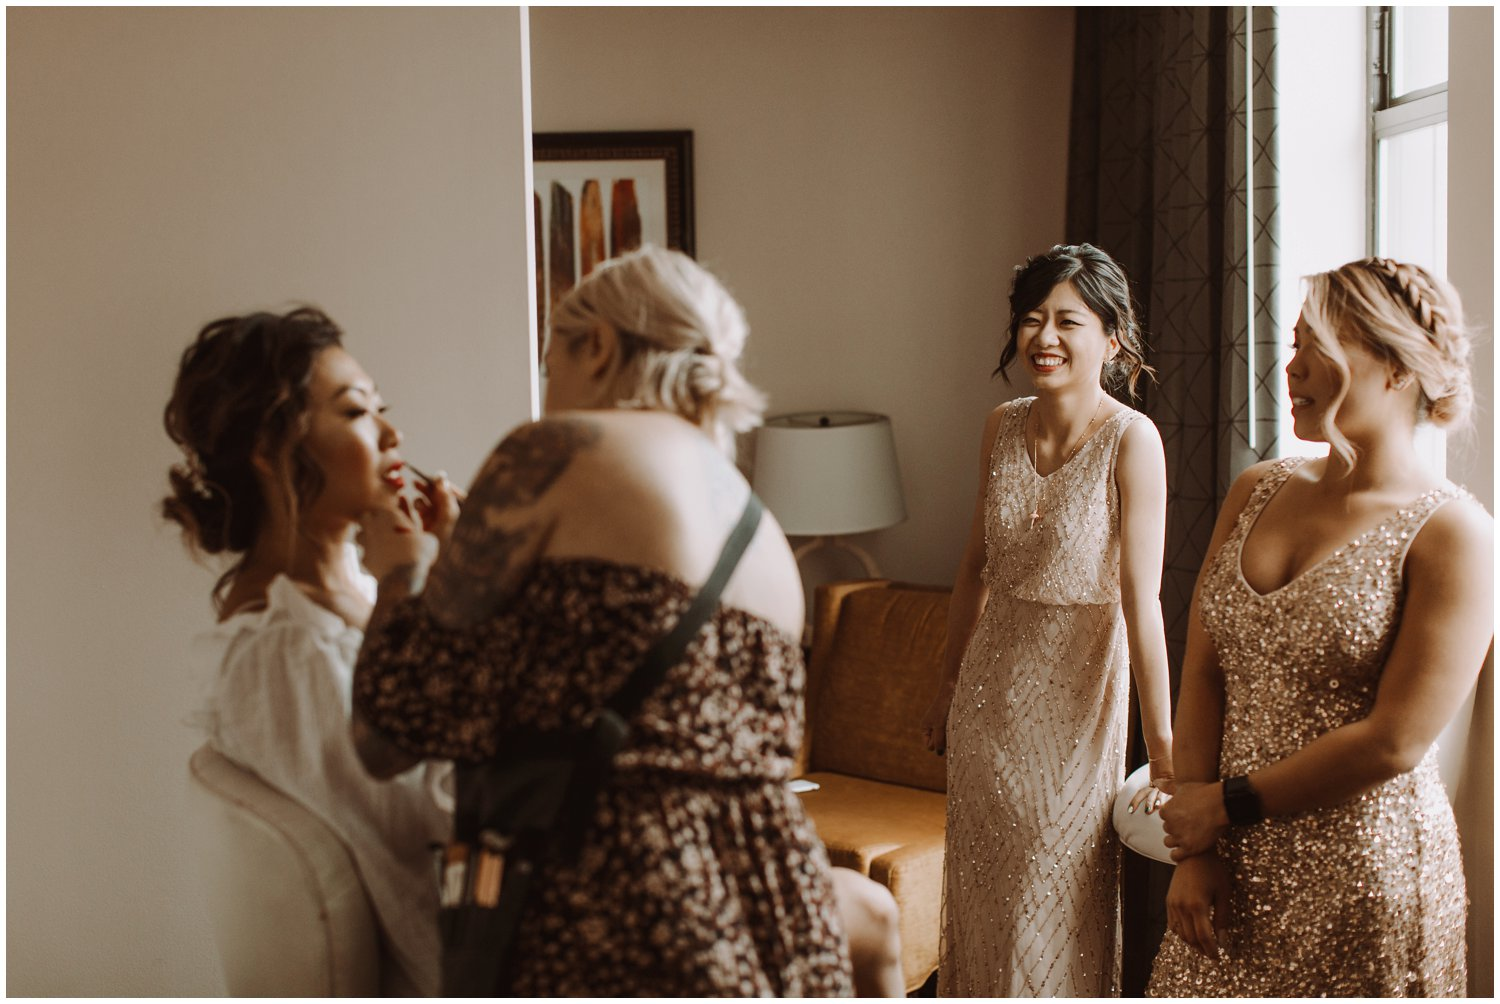 Peabody Library Wedding | Hotel Revival Baltimore Wedding | Art Deco Wedding | Baltimore City Wedding | Kate Ann Photography | Bride Getting Ready Photography